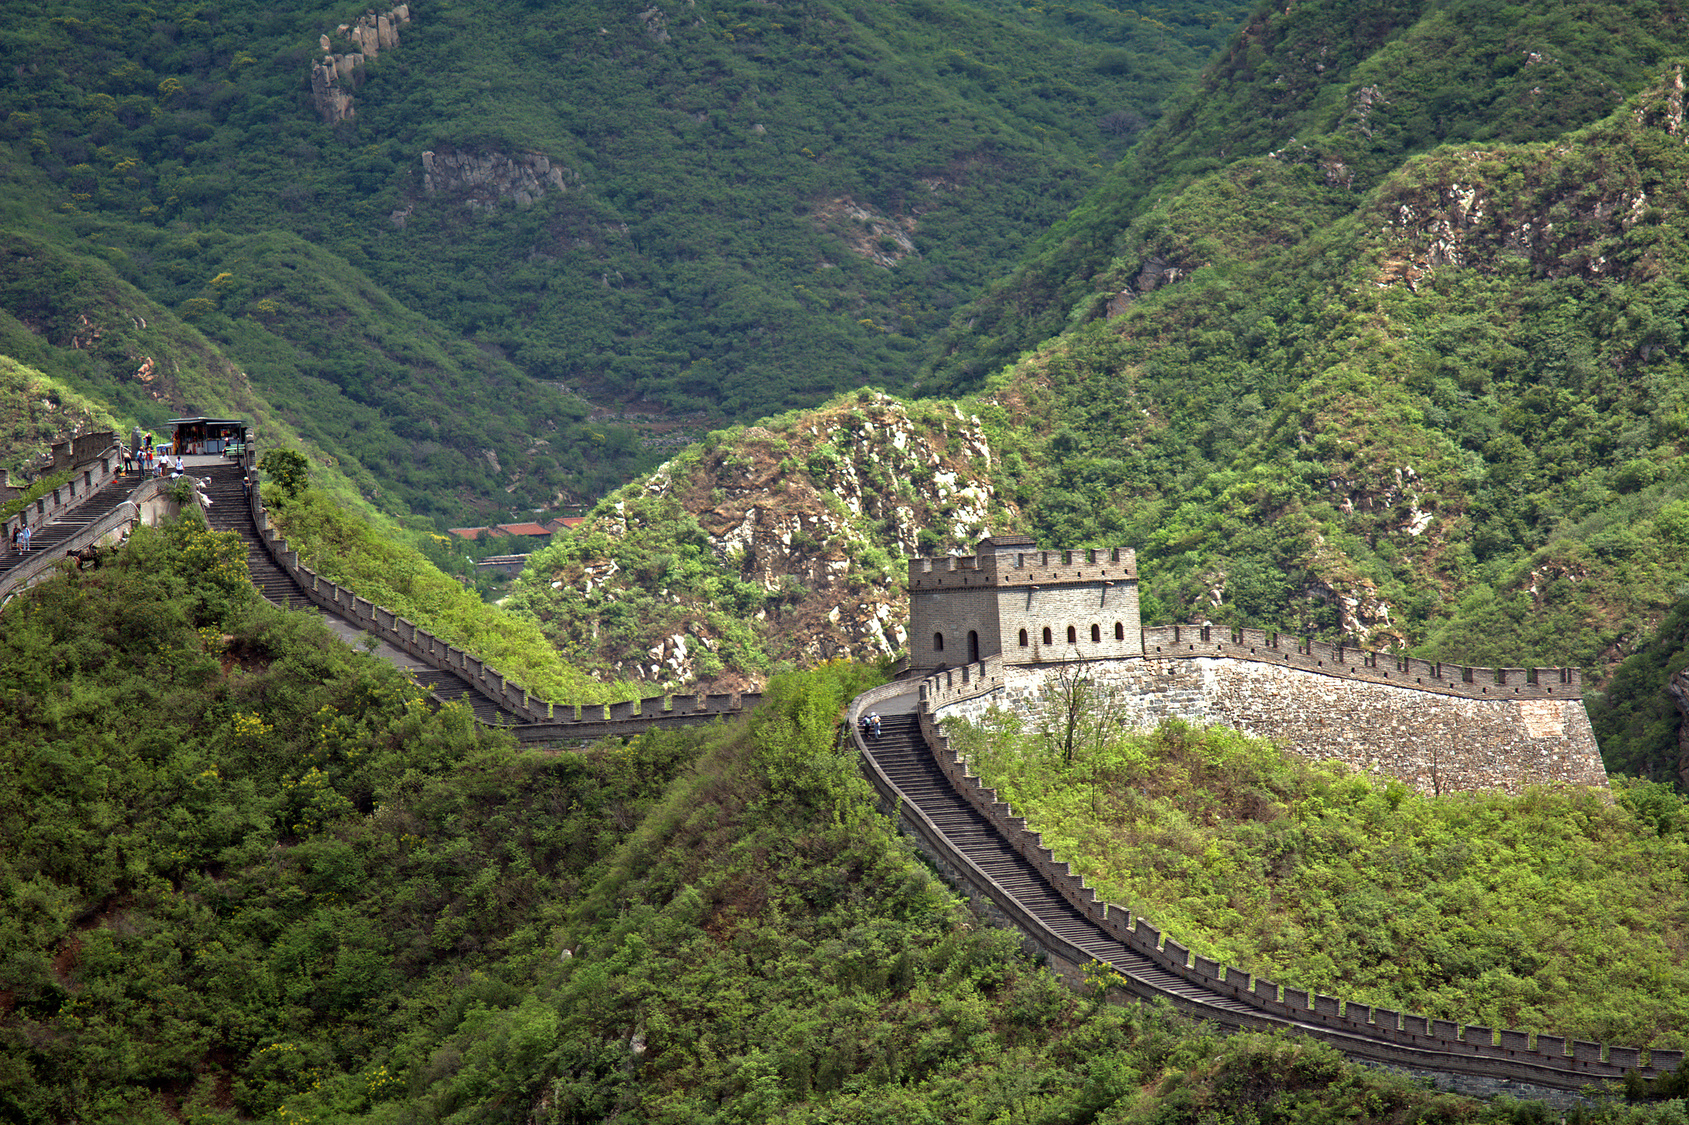 The Great Wall of China was built by the Qin Dynasty. What will the Tyent Dynasty build next?